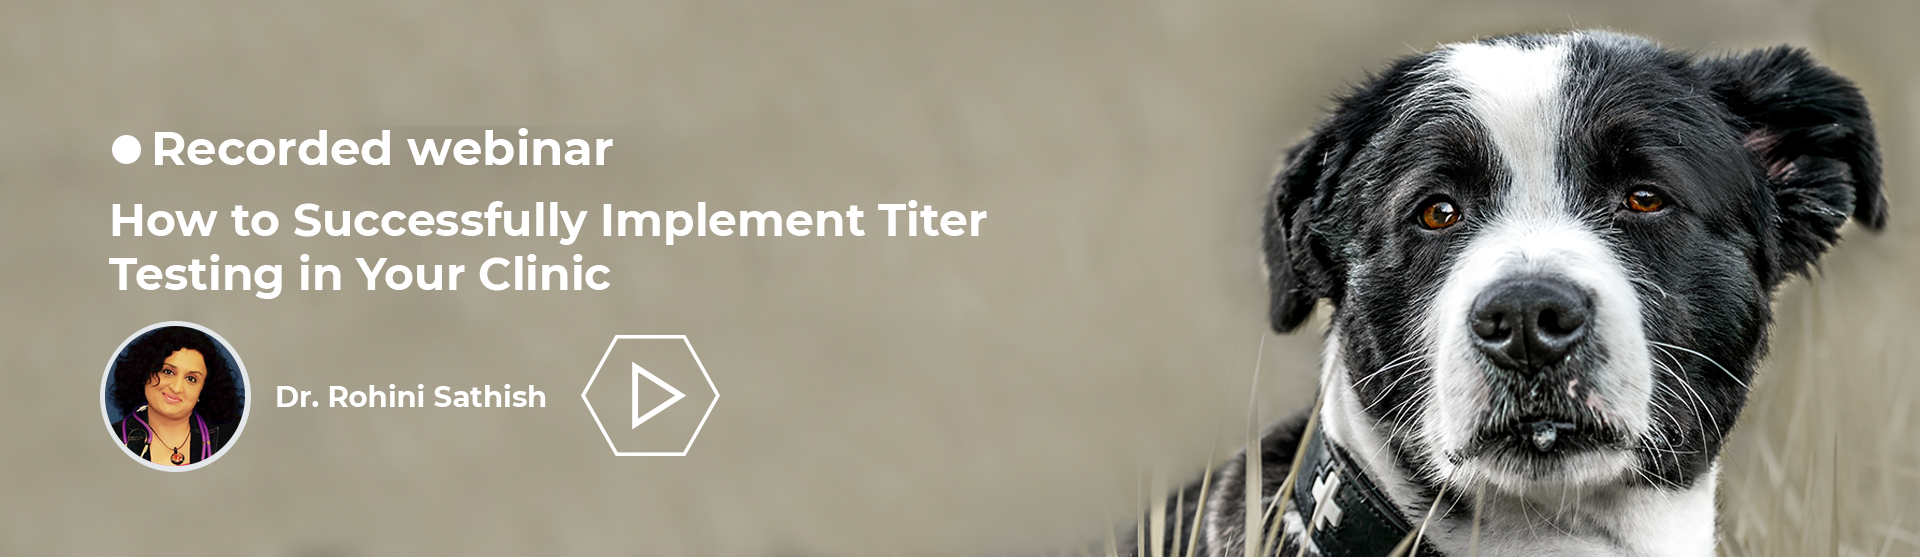 How to Successfully Implement Titer Testing in Your Clinic - recorded webinar